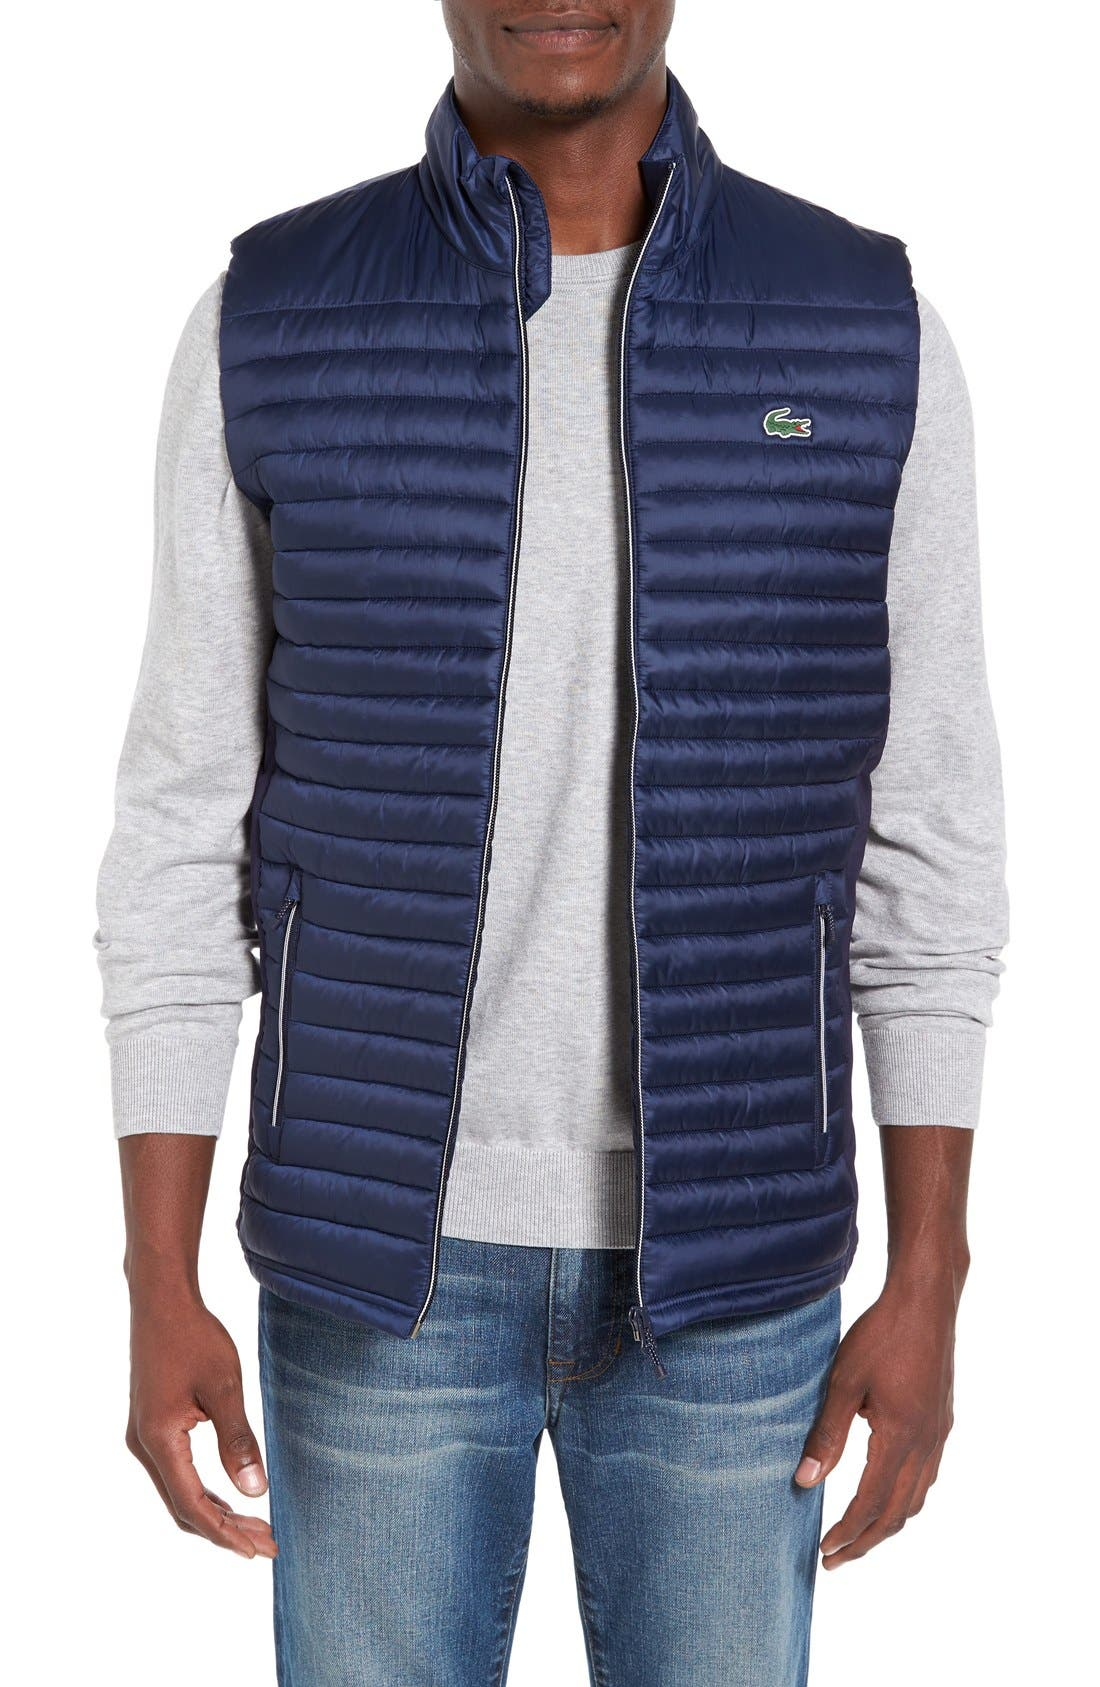 Alternate Image 1 Selected - Lacoste 'Sport' Insulated Vest